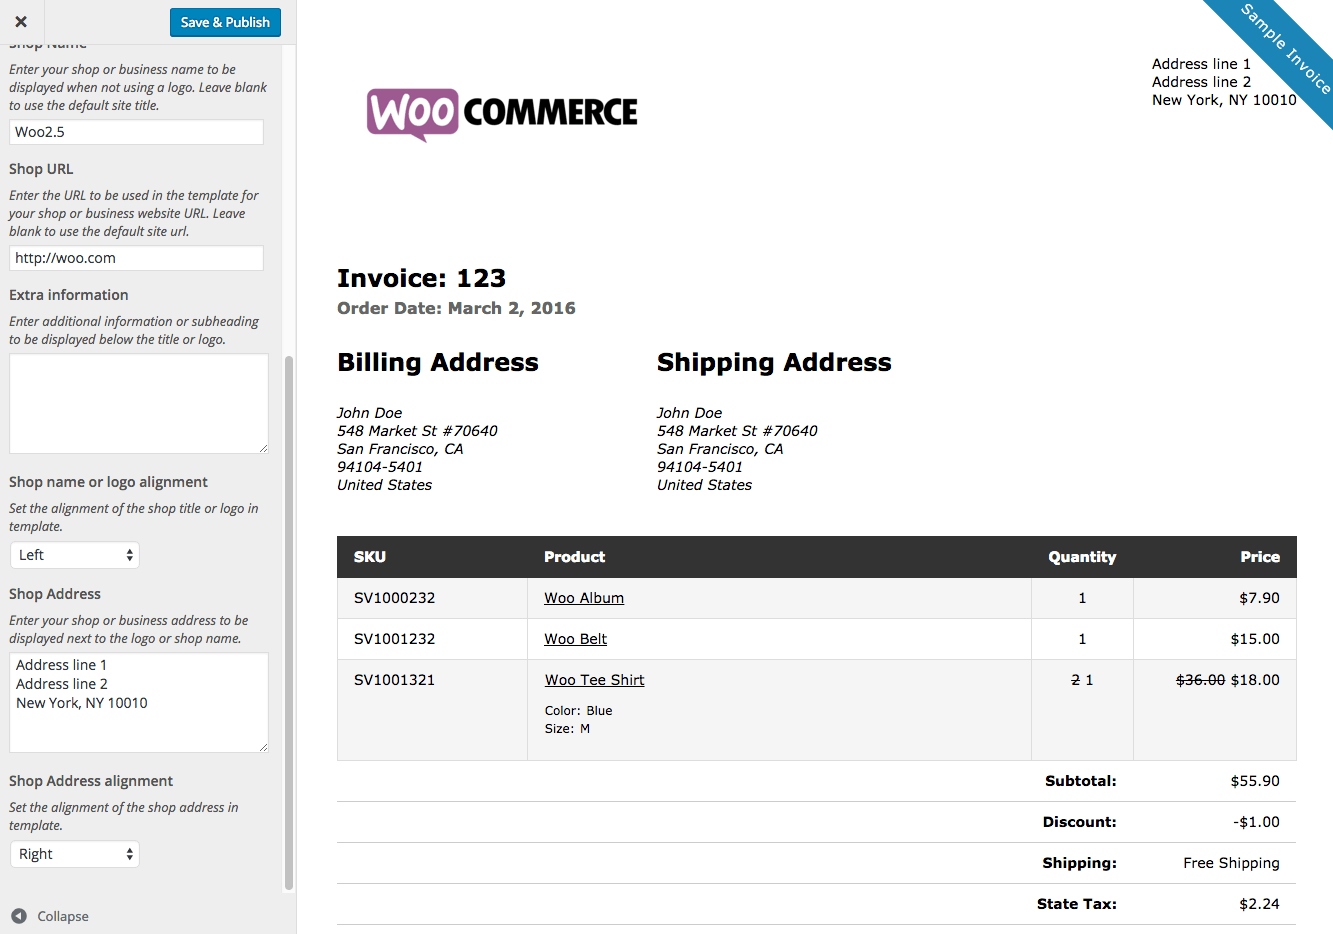 Floobydustus  Winning Woocommerce Print Invoices Amp Packing Lists  Woocommerce Docs With Outstanding Woocommerce Print Invoices  Packing Lists Customizer With Amusing What To Put On An Invoice Also Receipt Of The Invoice In Addition Php Invoice System And Written Invoice As Well As Personalised Duplicate Invoice Books Additionally What Is Purchase Invoice From Docswoocommercecom With Floobydustus  Outstanding Woocommerce Print Invoices Amp Packing Lists  Woocommerce Docs With Amusing Woocommerce Print Invoices  Packing Lists Customizer And Winning What To Put On An Invoice Also Receipt Of The Invoice In Addition Php Invoice System From Docswoocommercecom